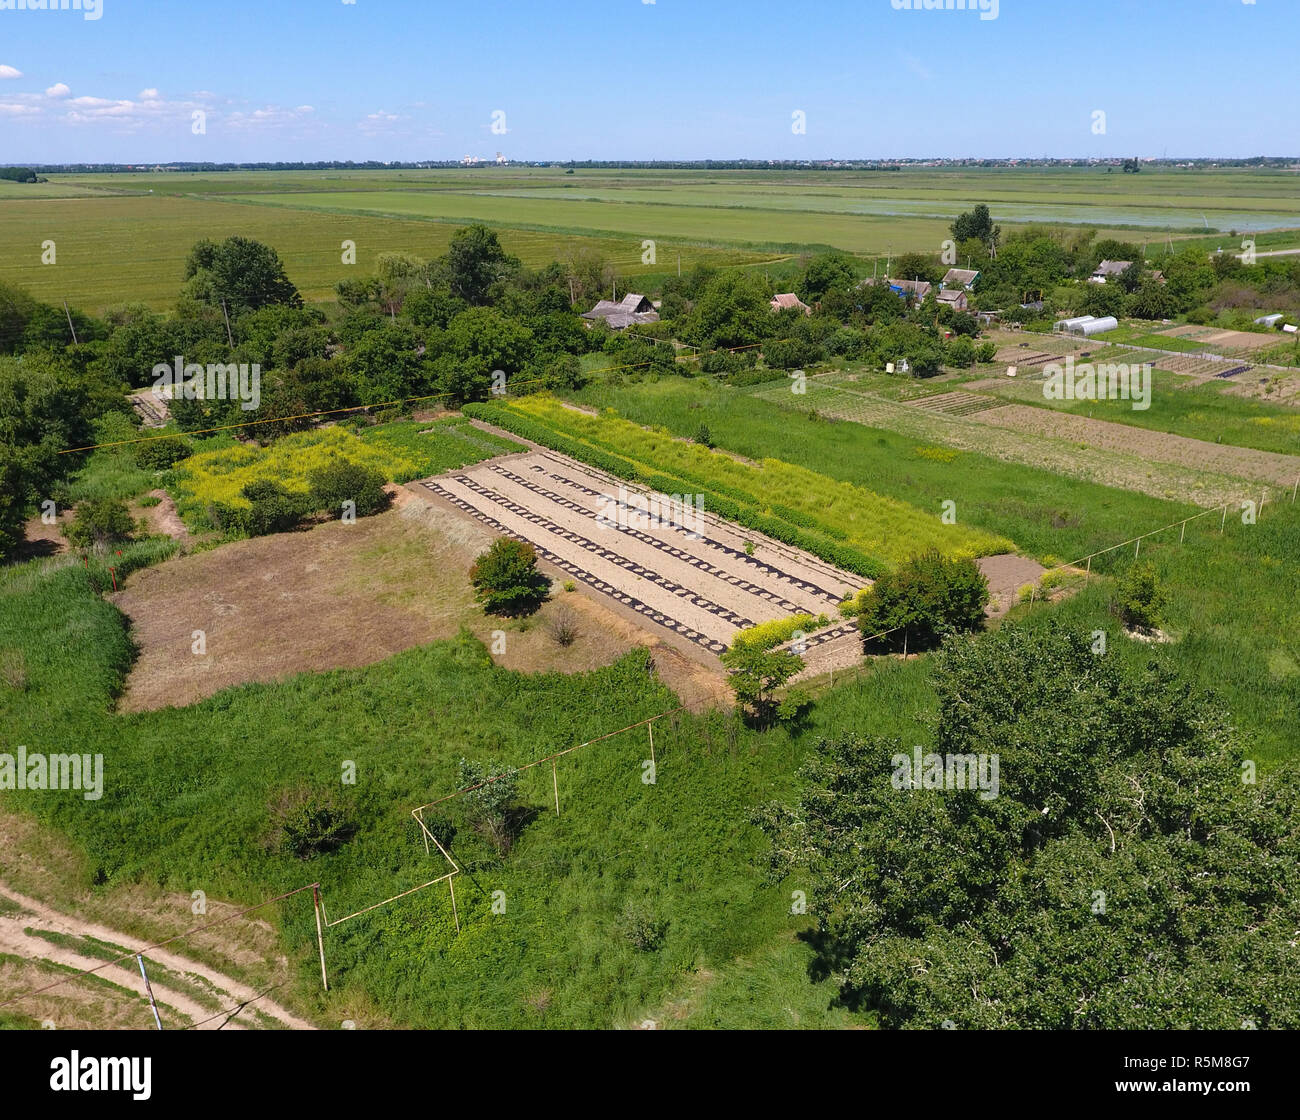 A garden bed with watermelons and melons sown under a film. Seeding melon under the film. Beds in the gardens, top view. - Stock Image